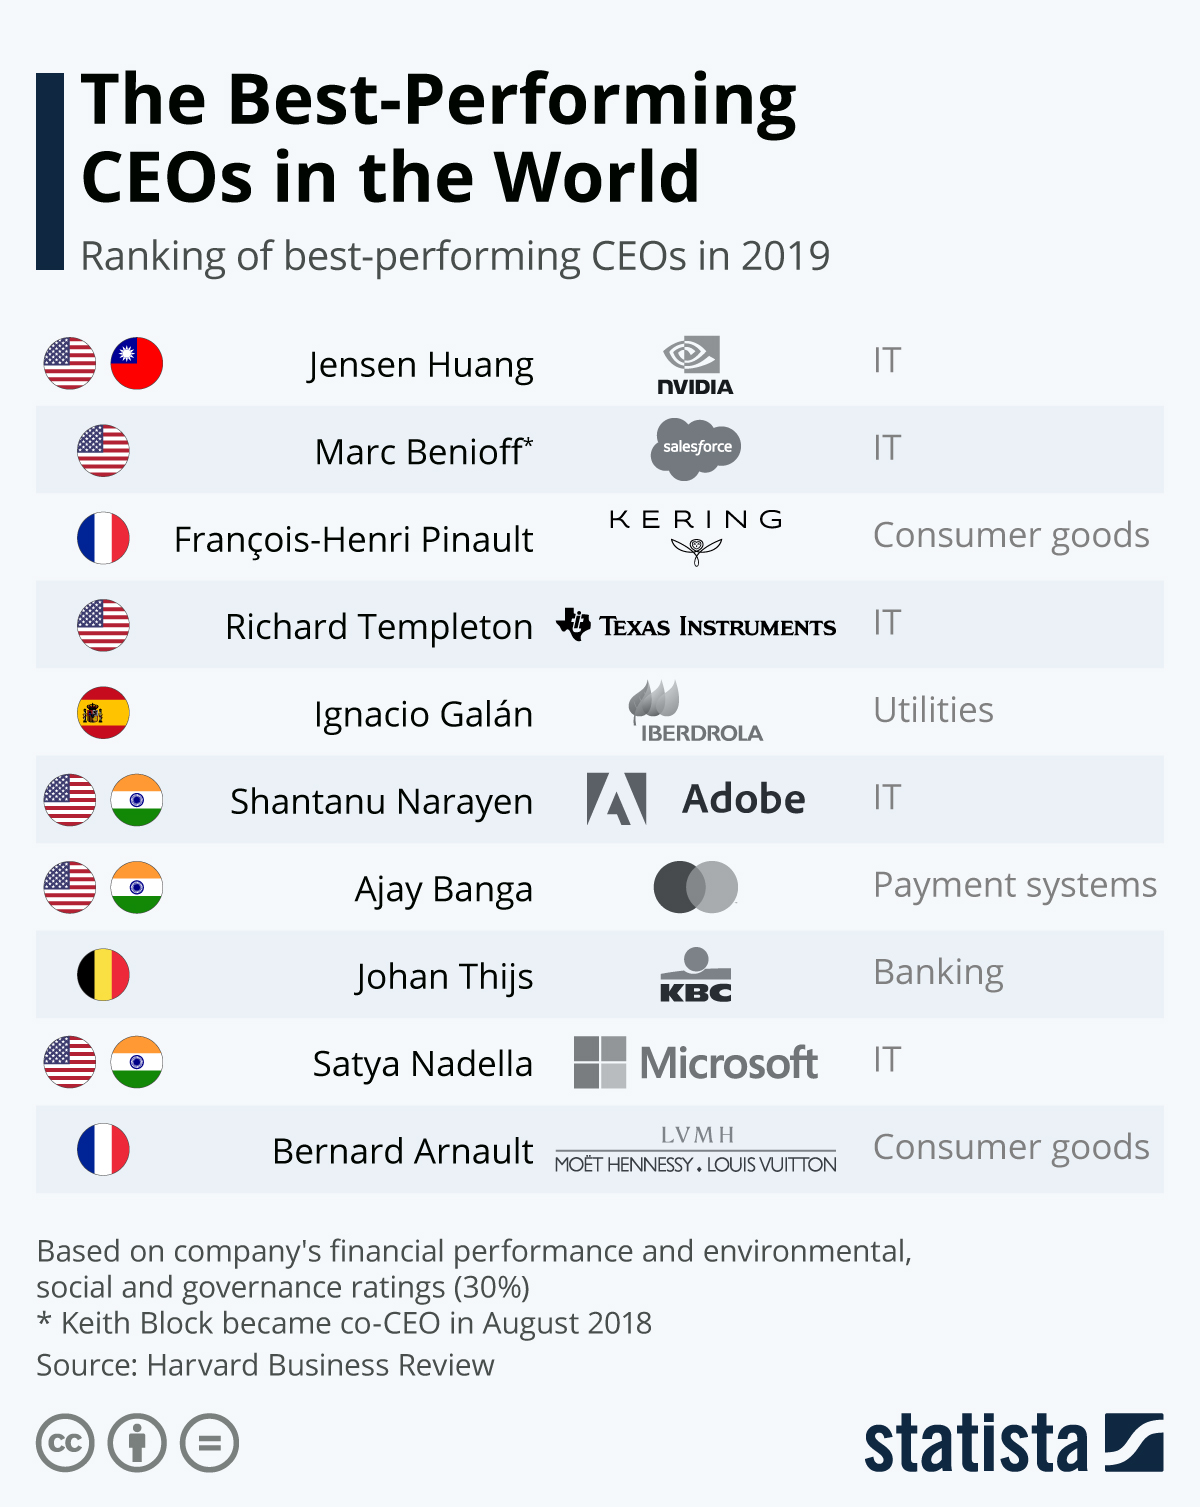 The Best-Performing CEOs in the World #infographic